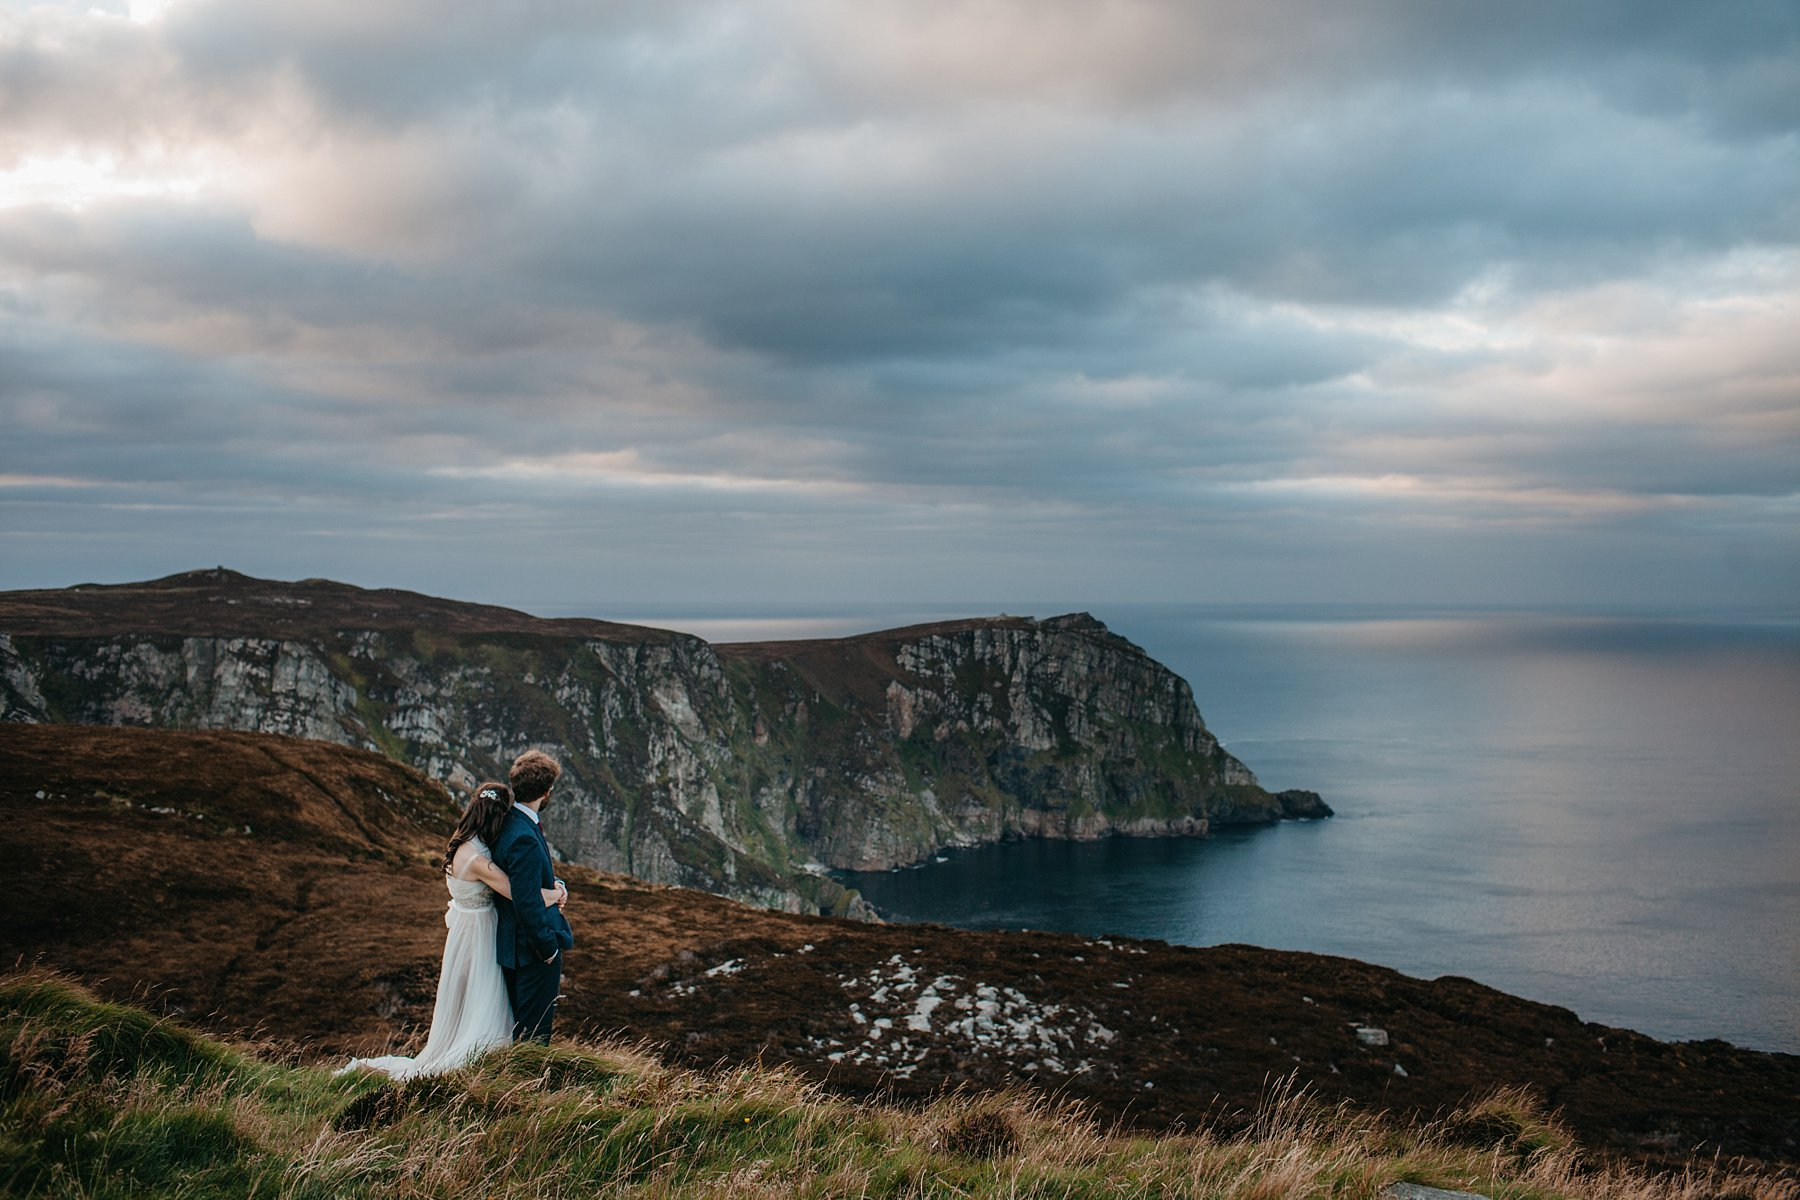 hornhead_donegak_elopement_weddings_0080